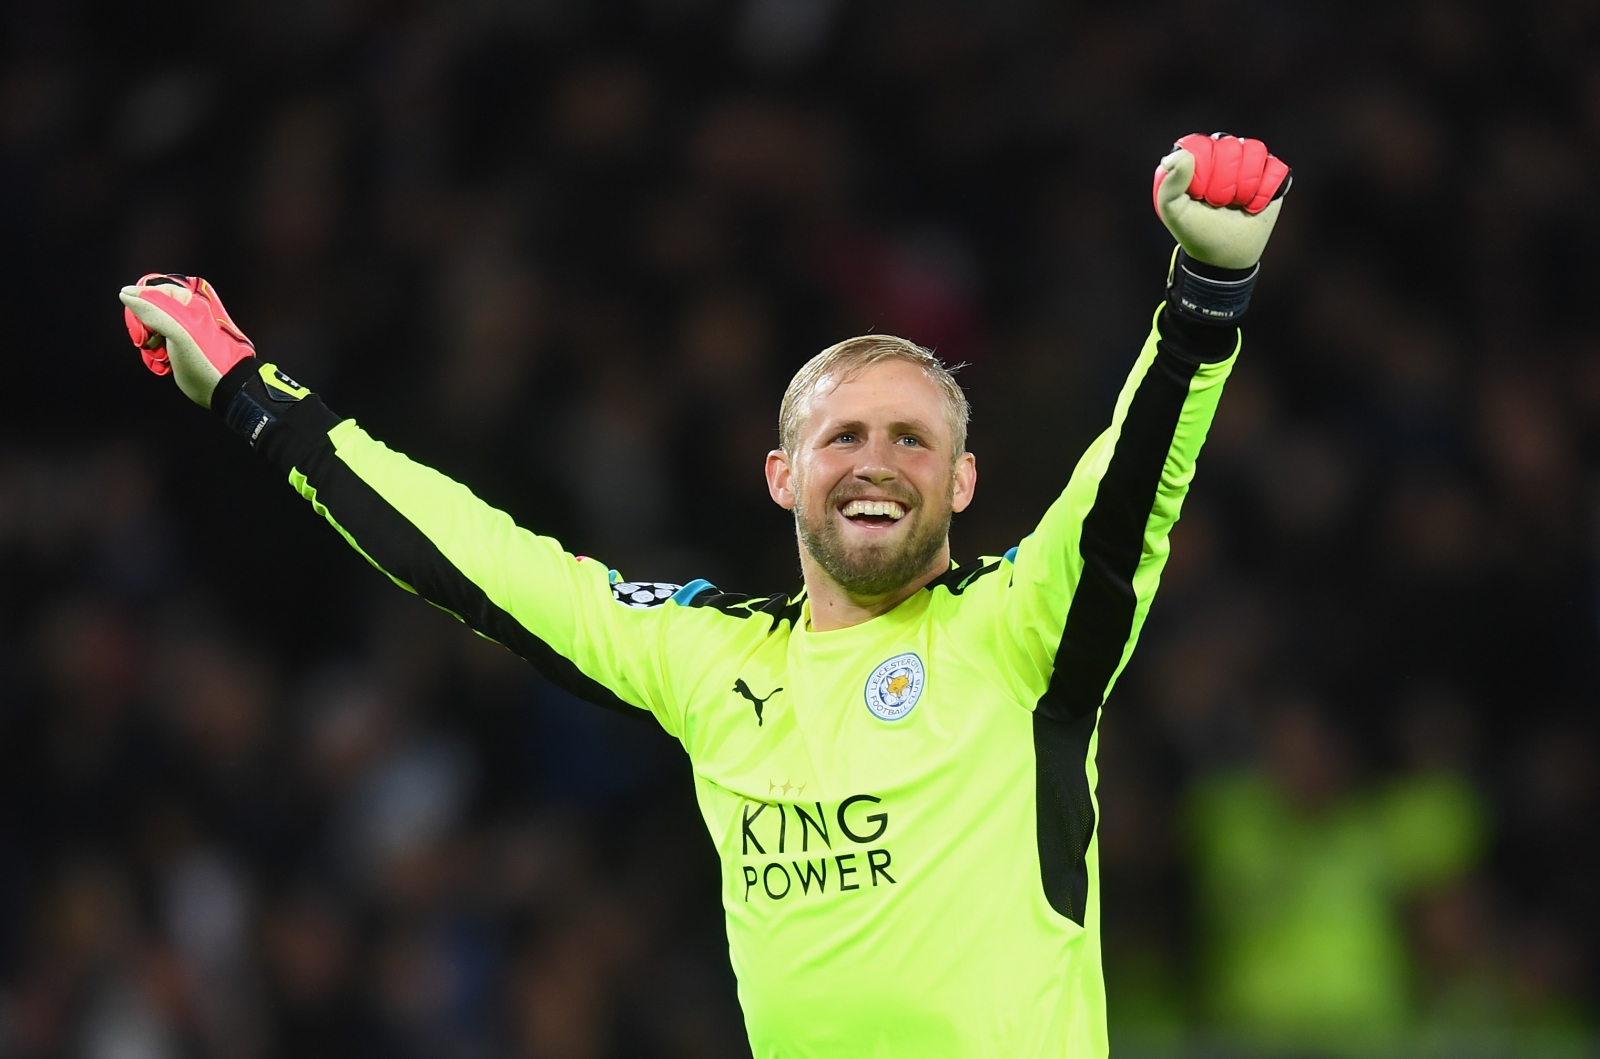 Peter Schmeichel tells of desire to see son Kasper move to